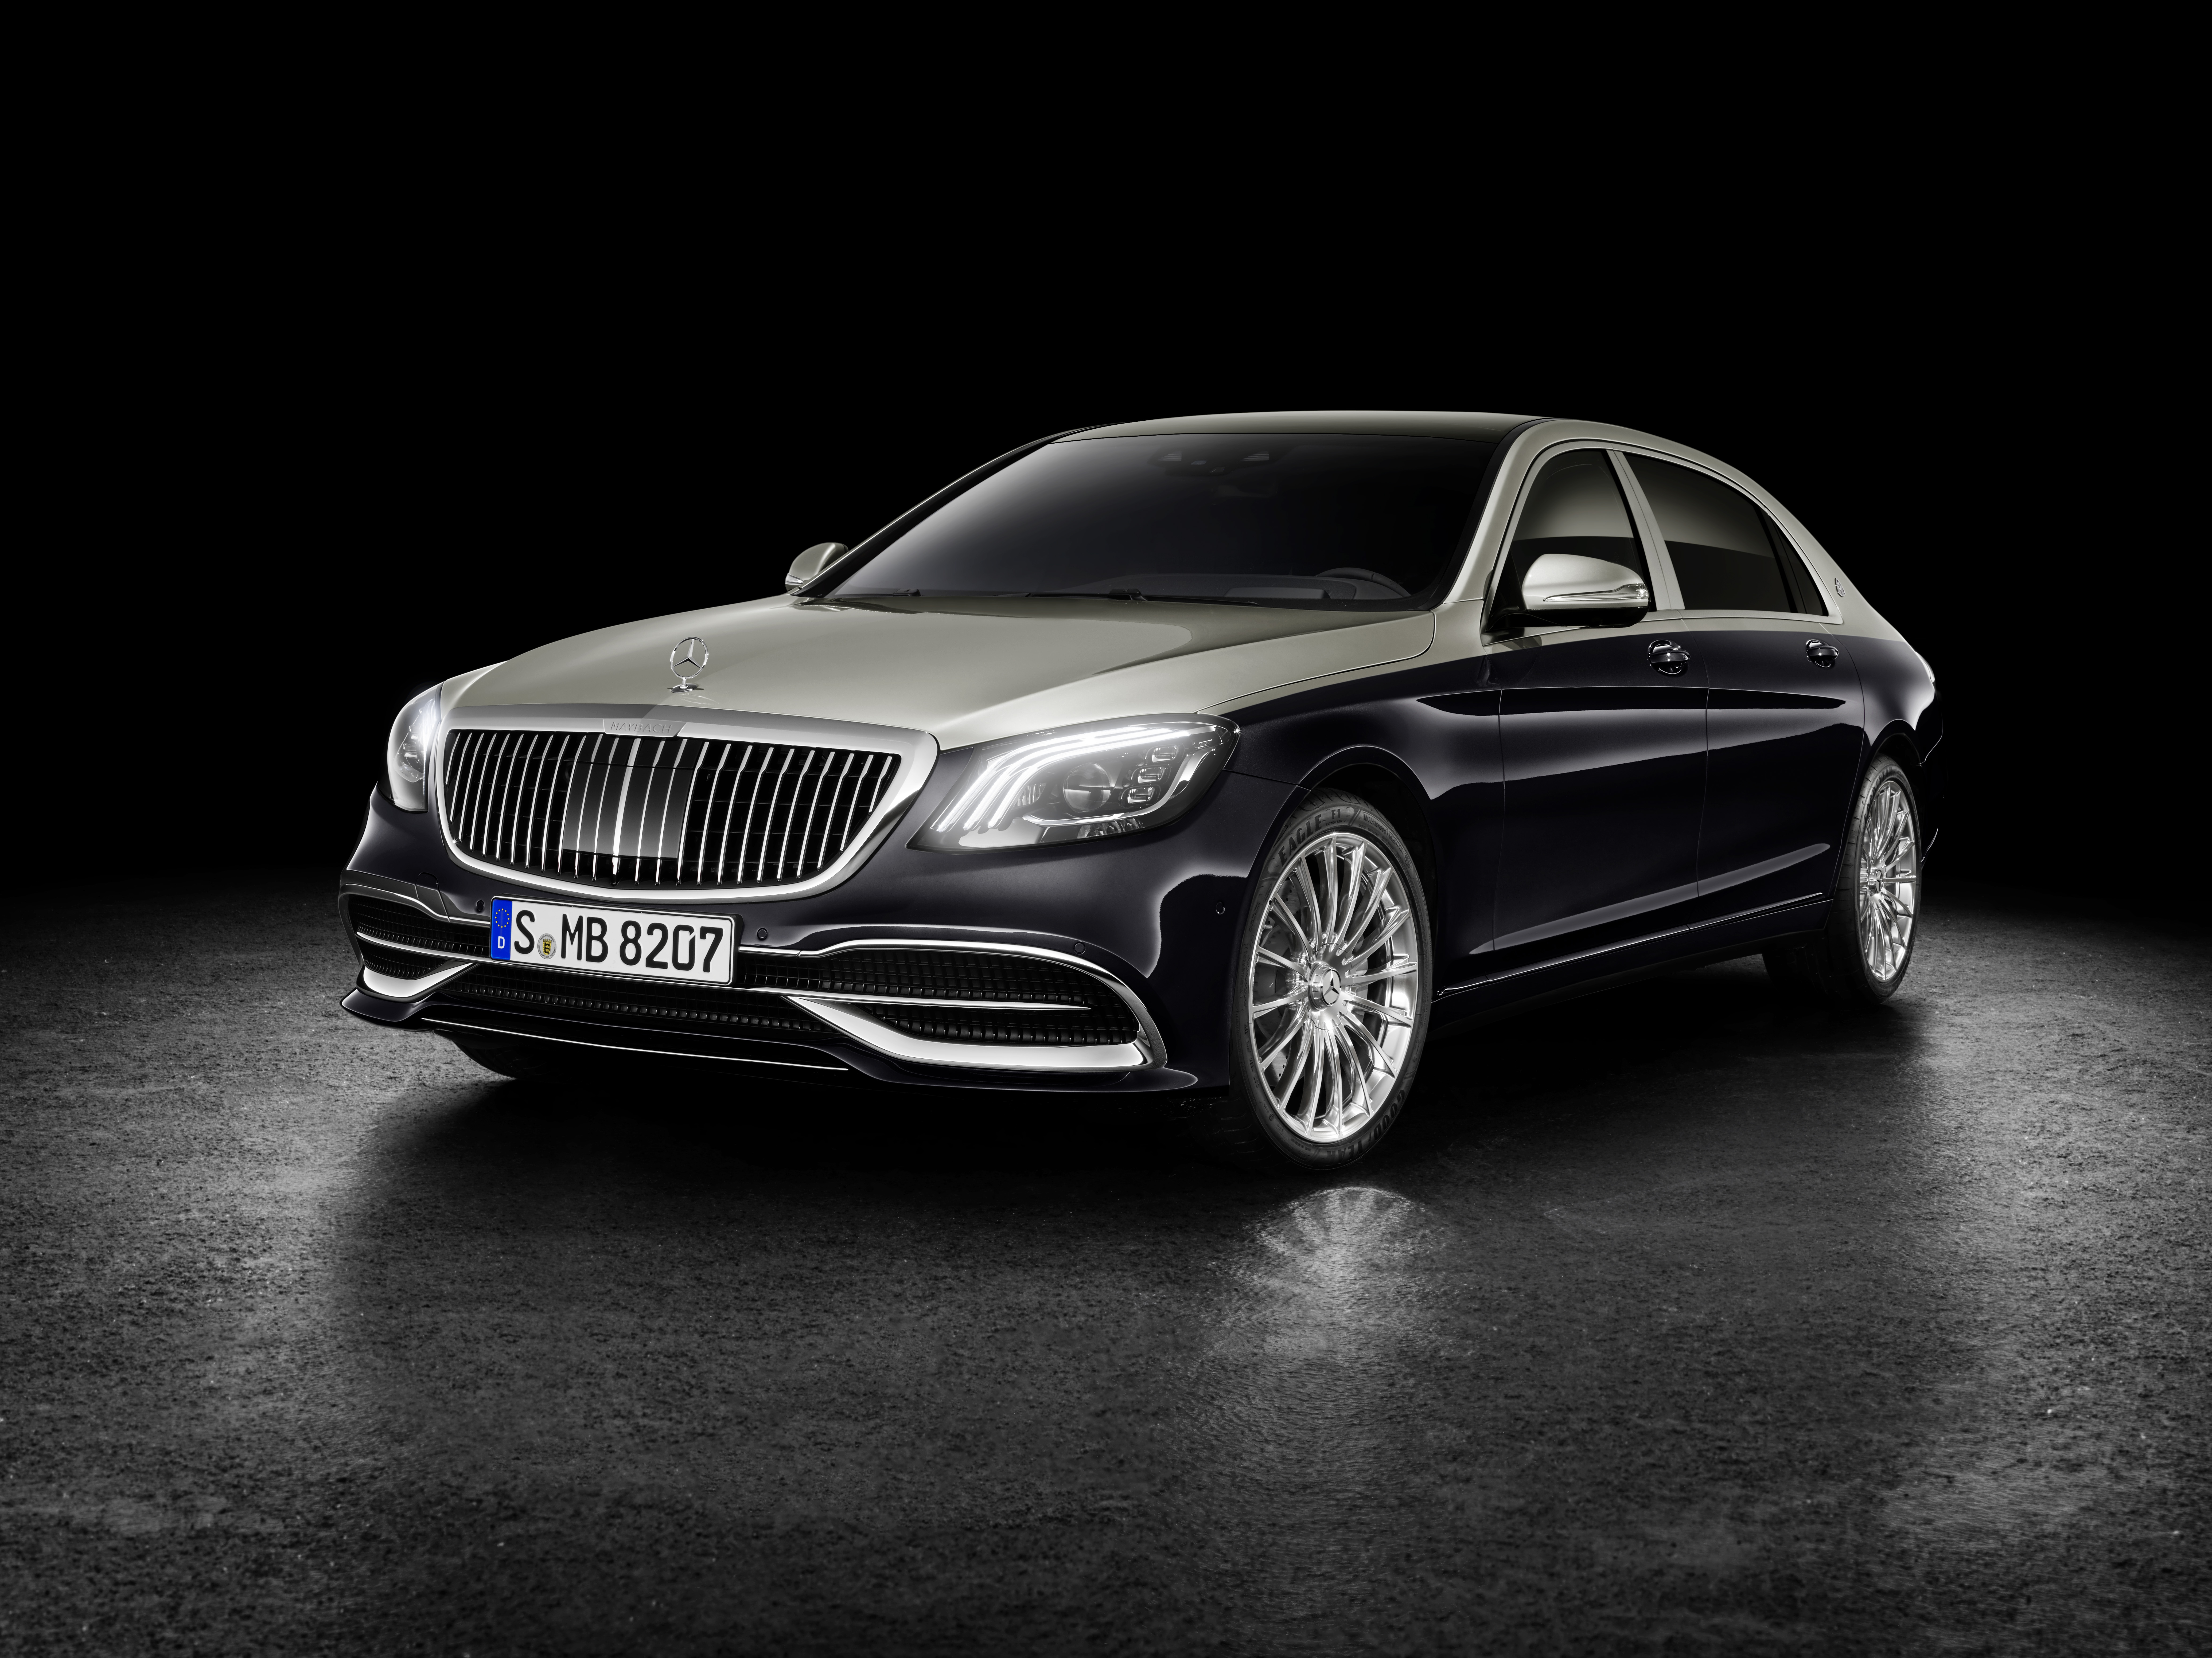 2018 Mercedes-Maybach S-Class revealed